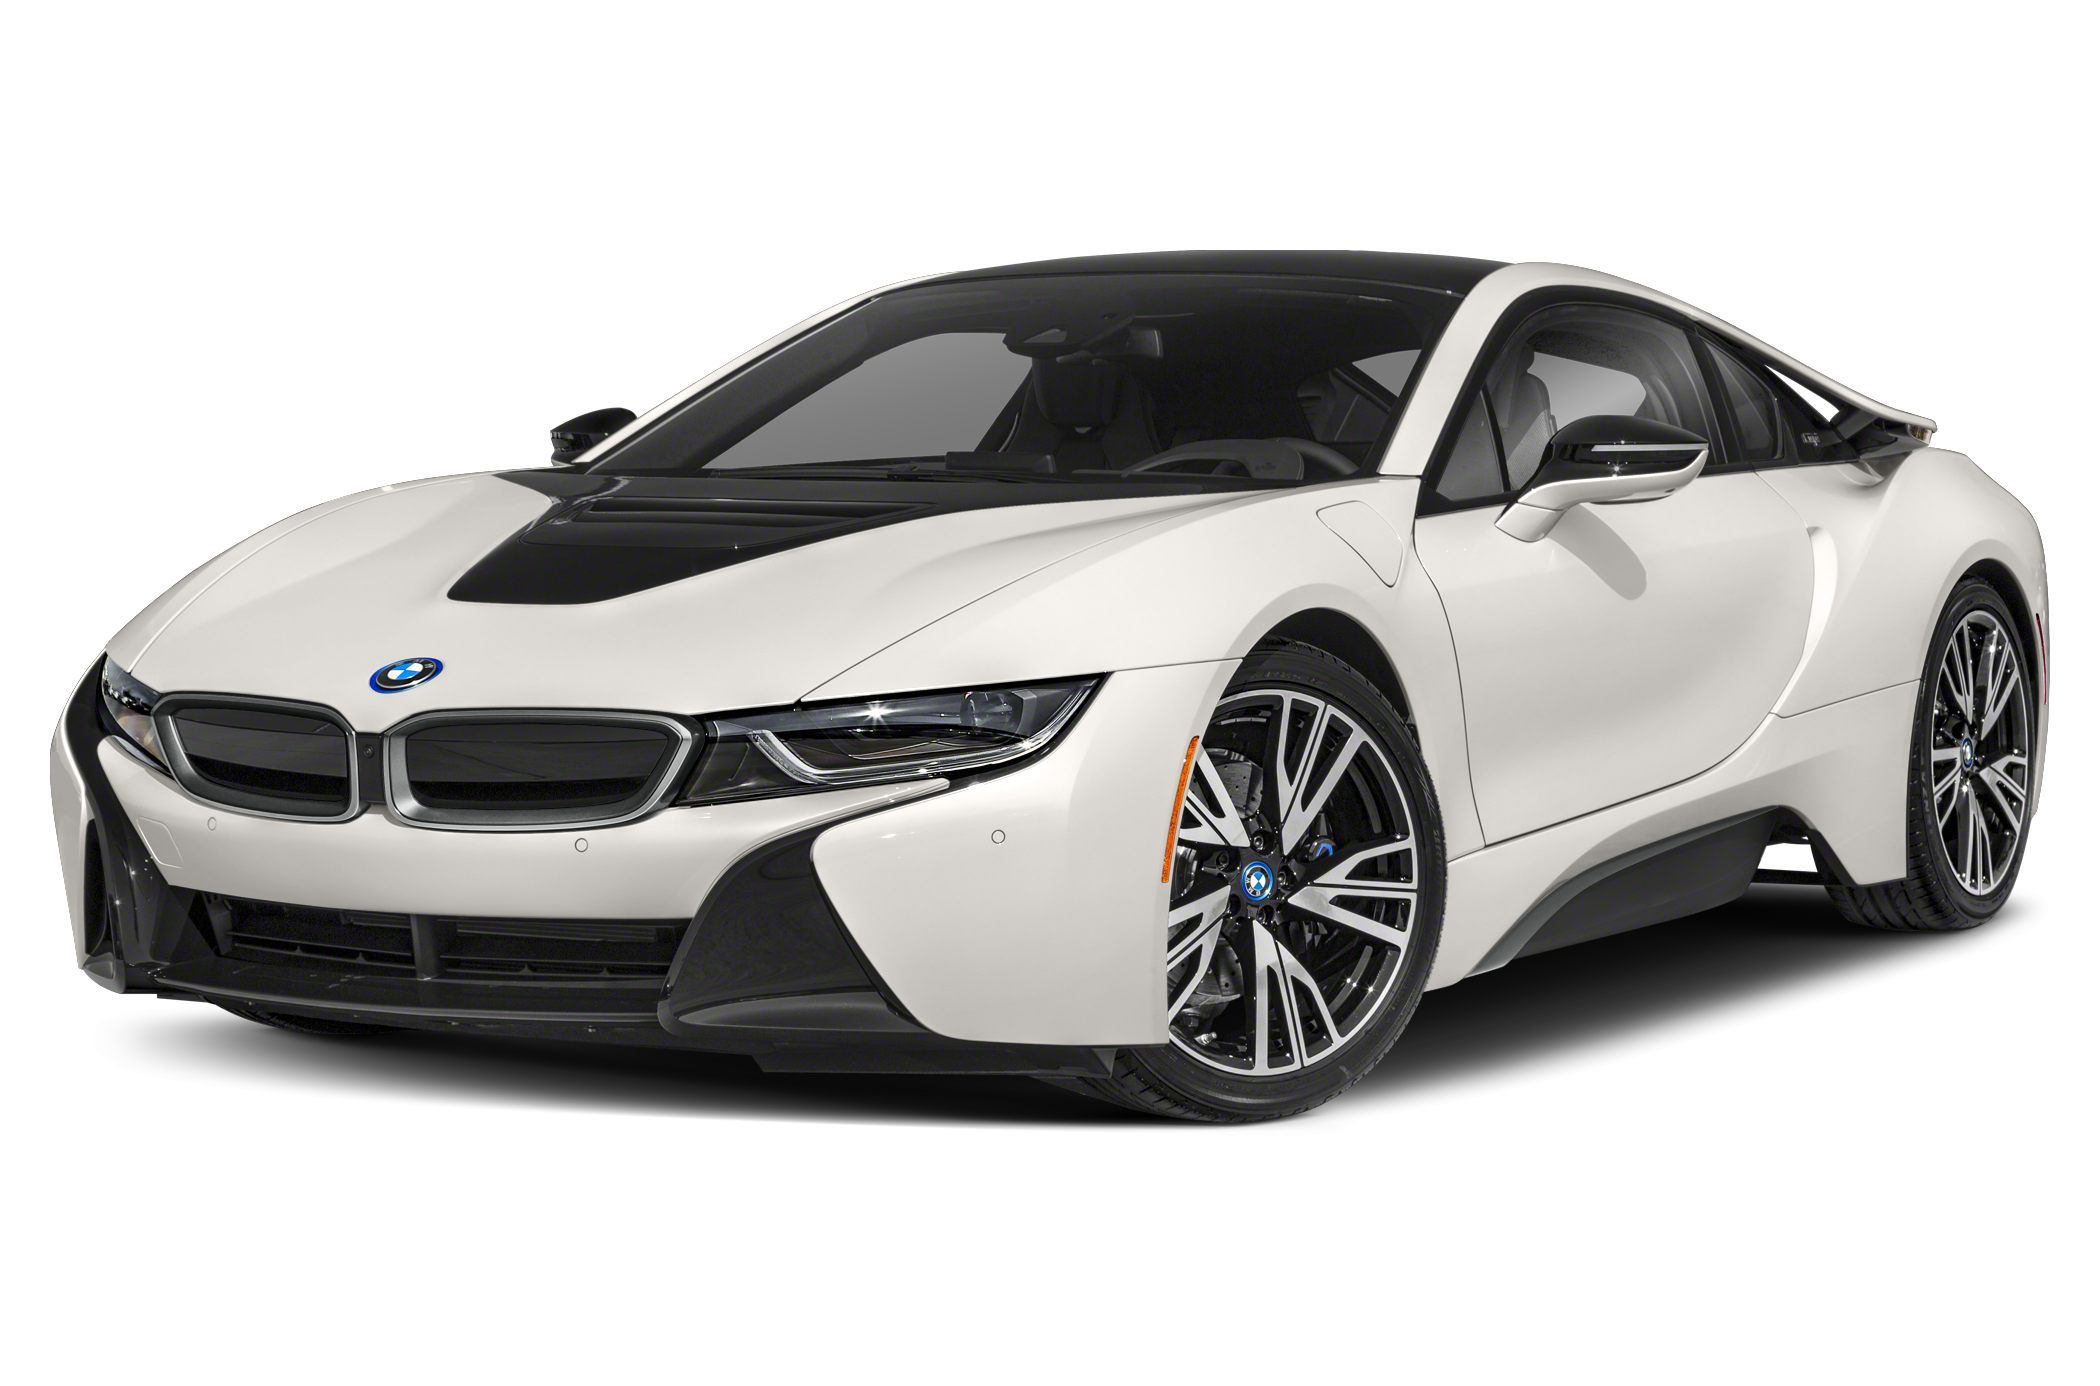 Bmw I8 Coupe In 2020 Bmw I8 Bmw Sports Car Bmw Sport